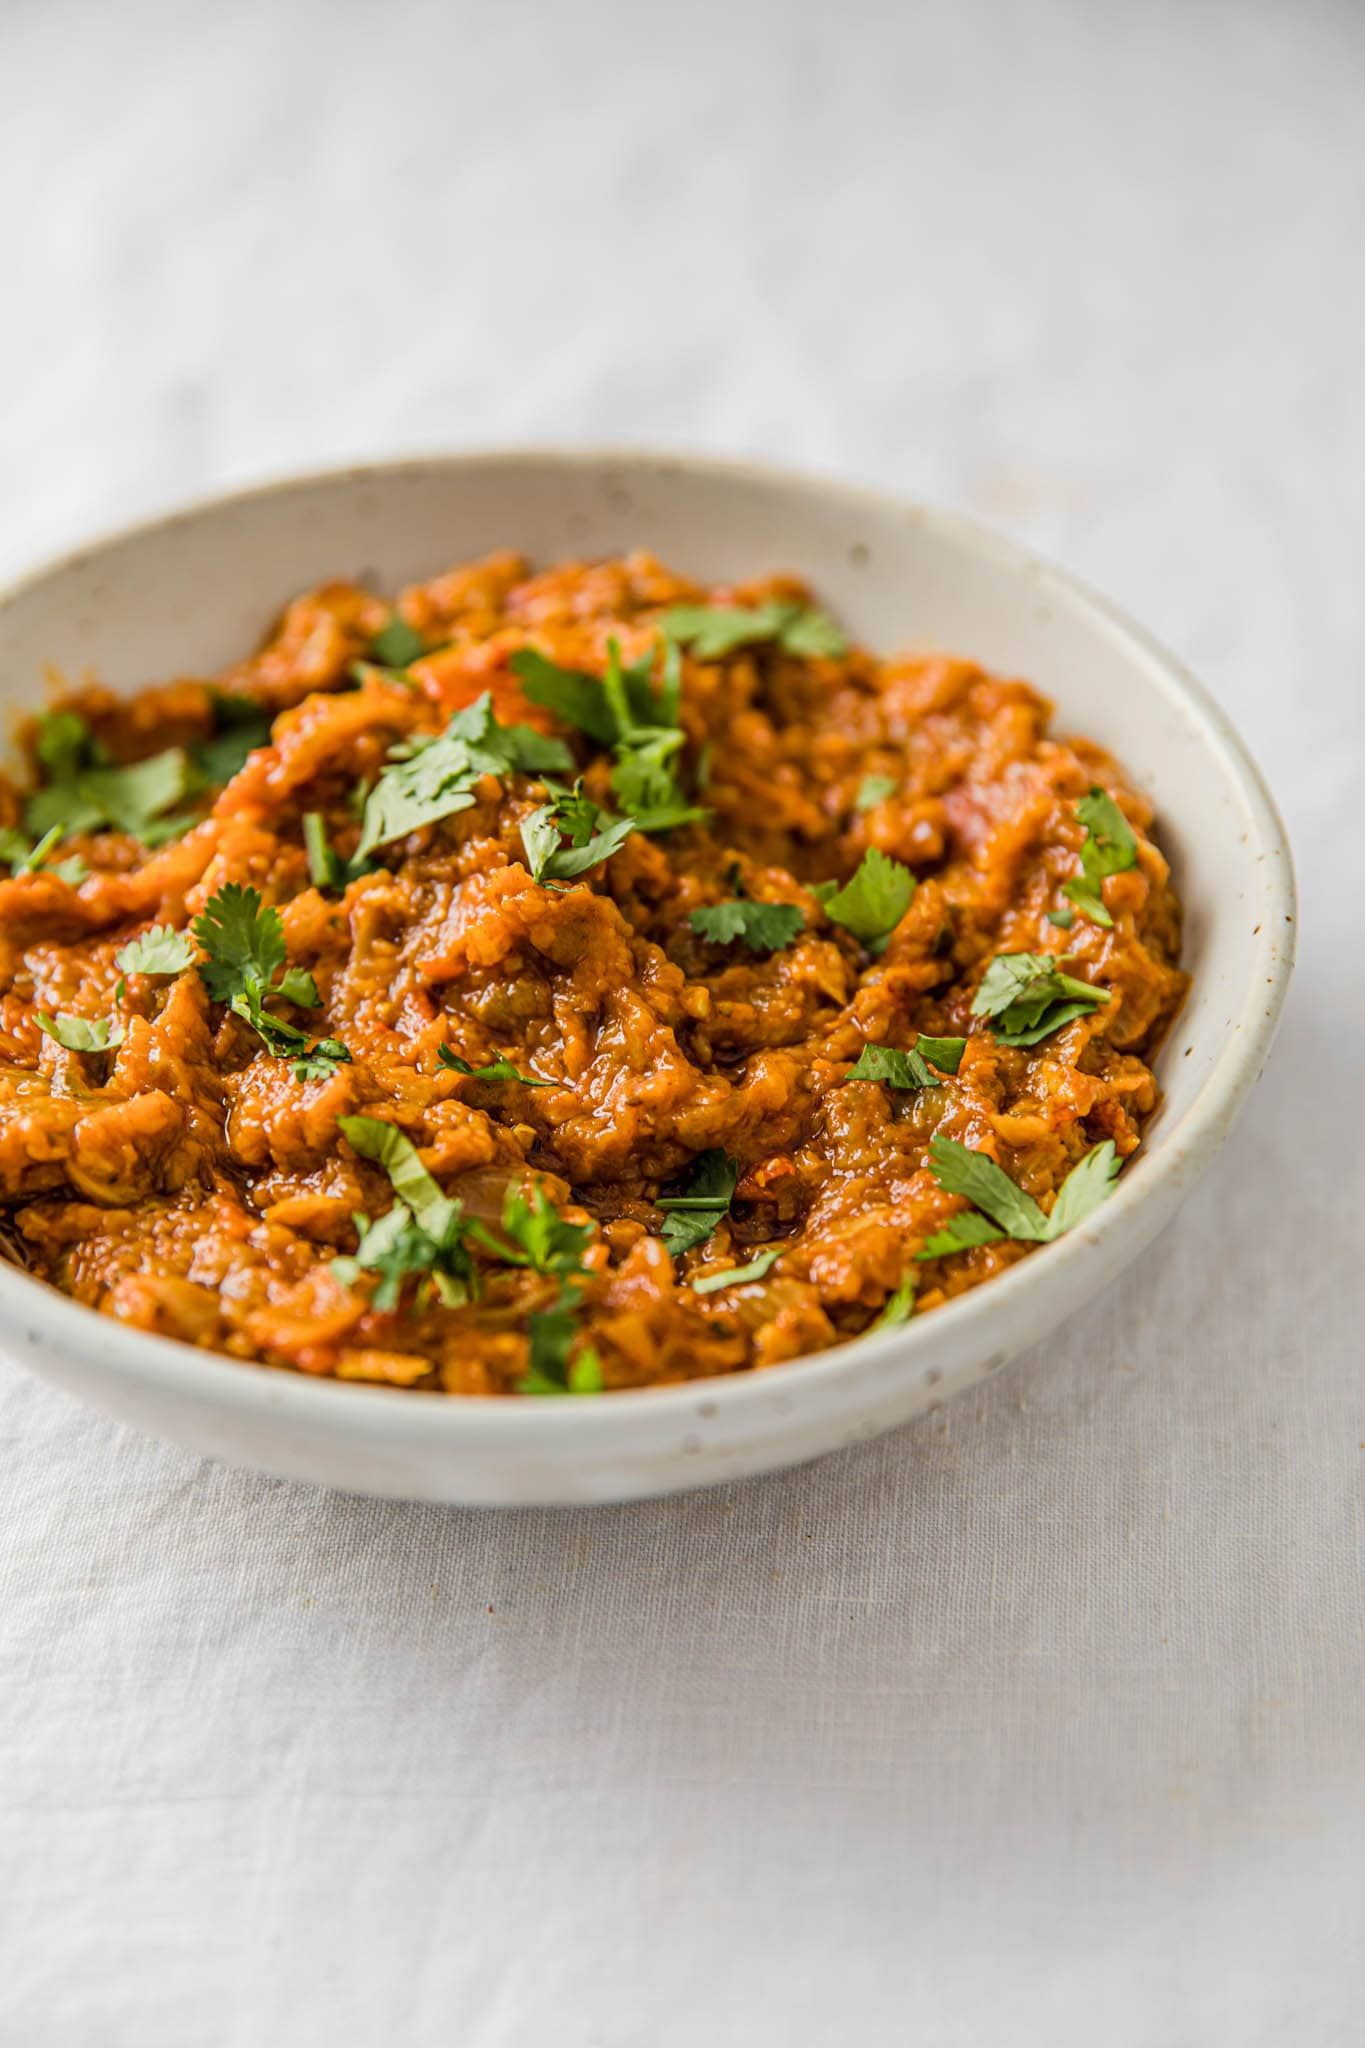 Baingan Bharta in a speckled bowl garnished with cilantro